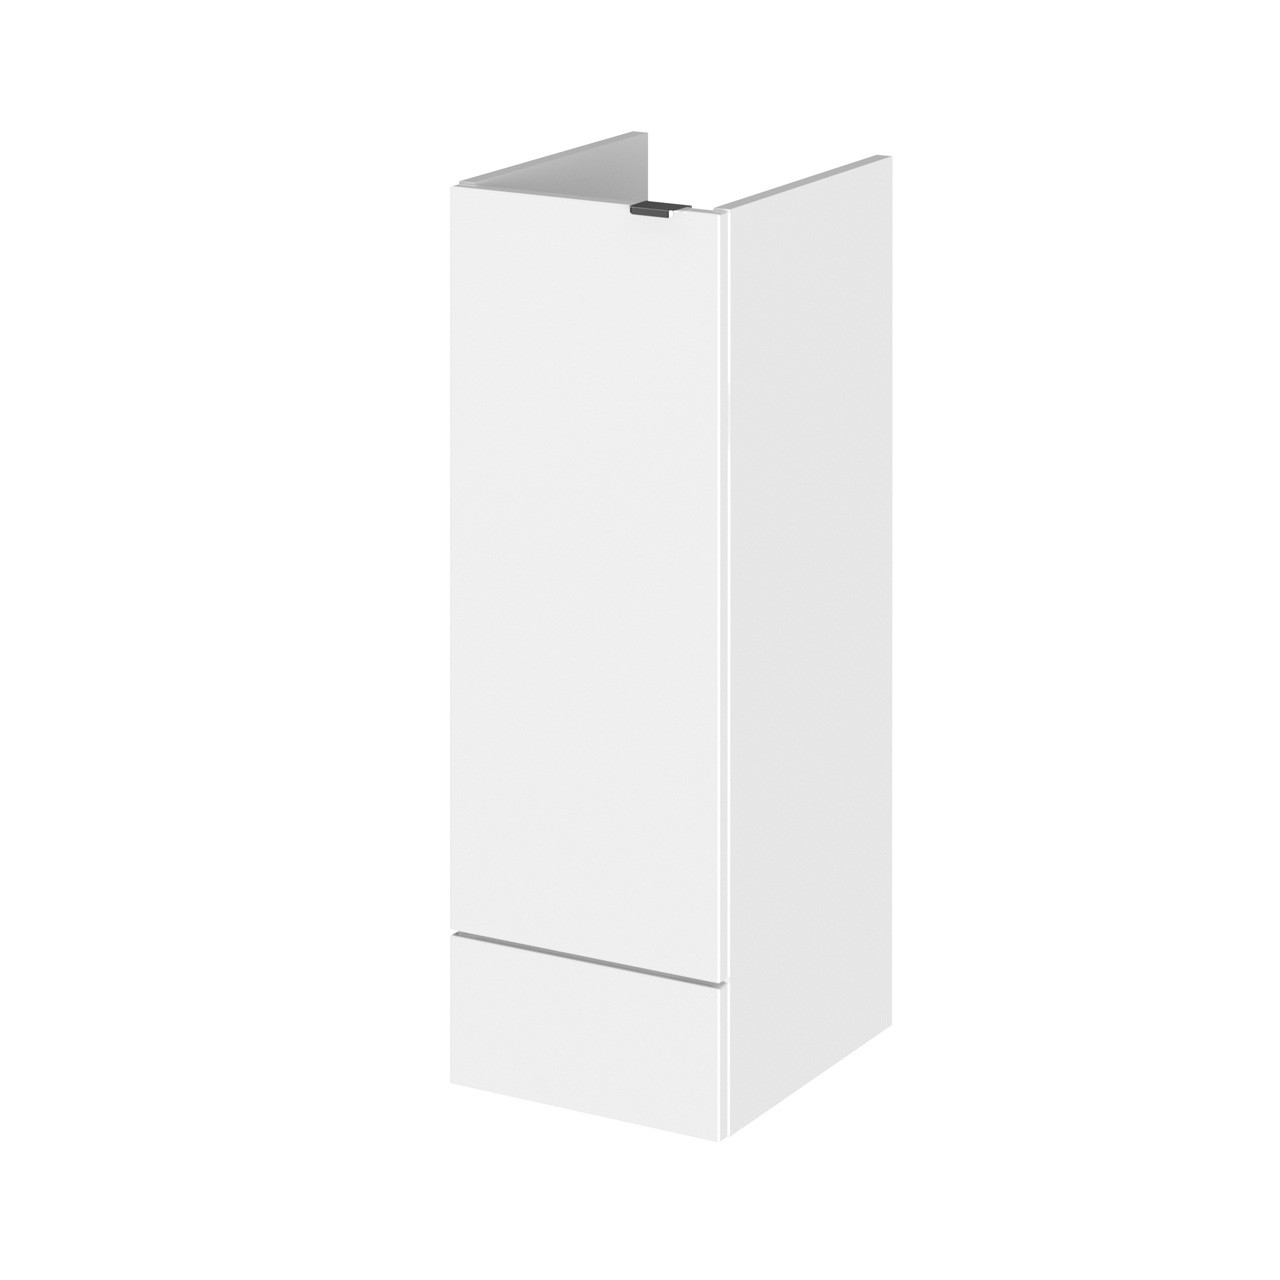 Hudson Reed White Gloss 300mm Base Unit - OFF182